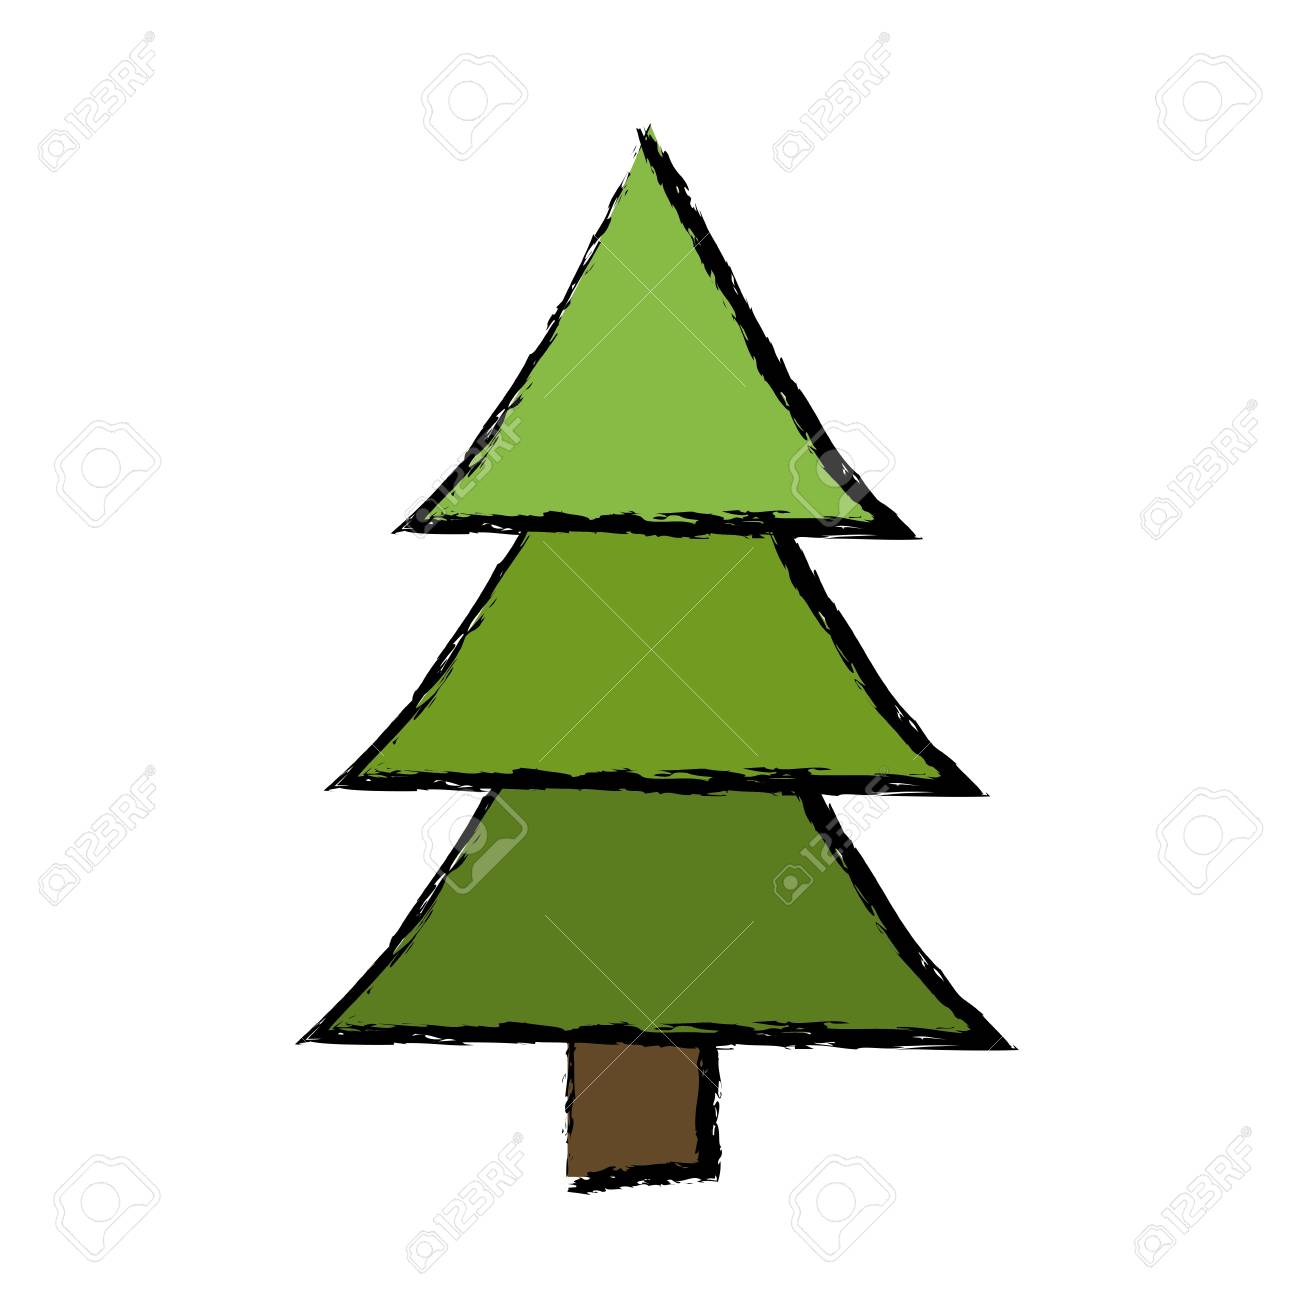 Evergreen Tree Drawing at GetDrawings.com | Free for personal use ...